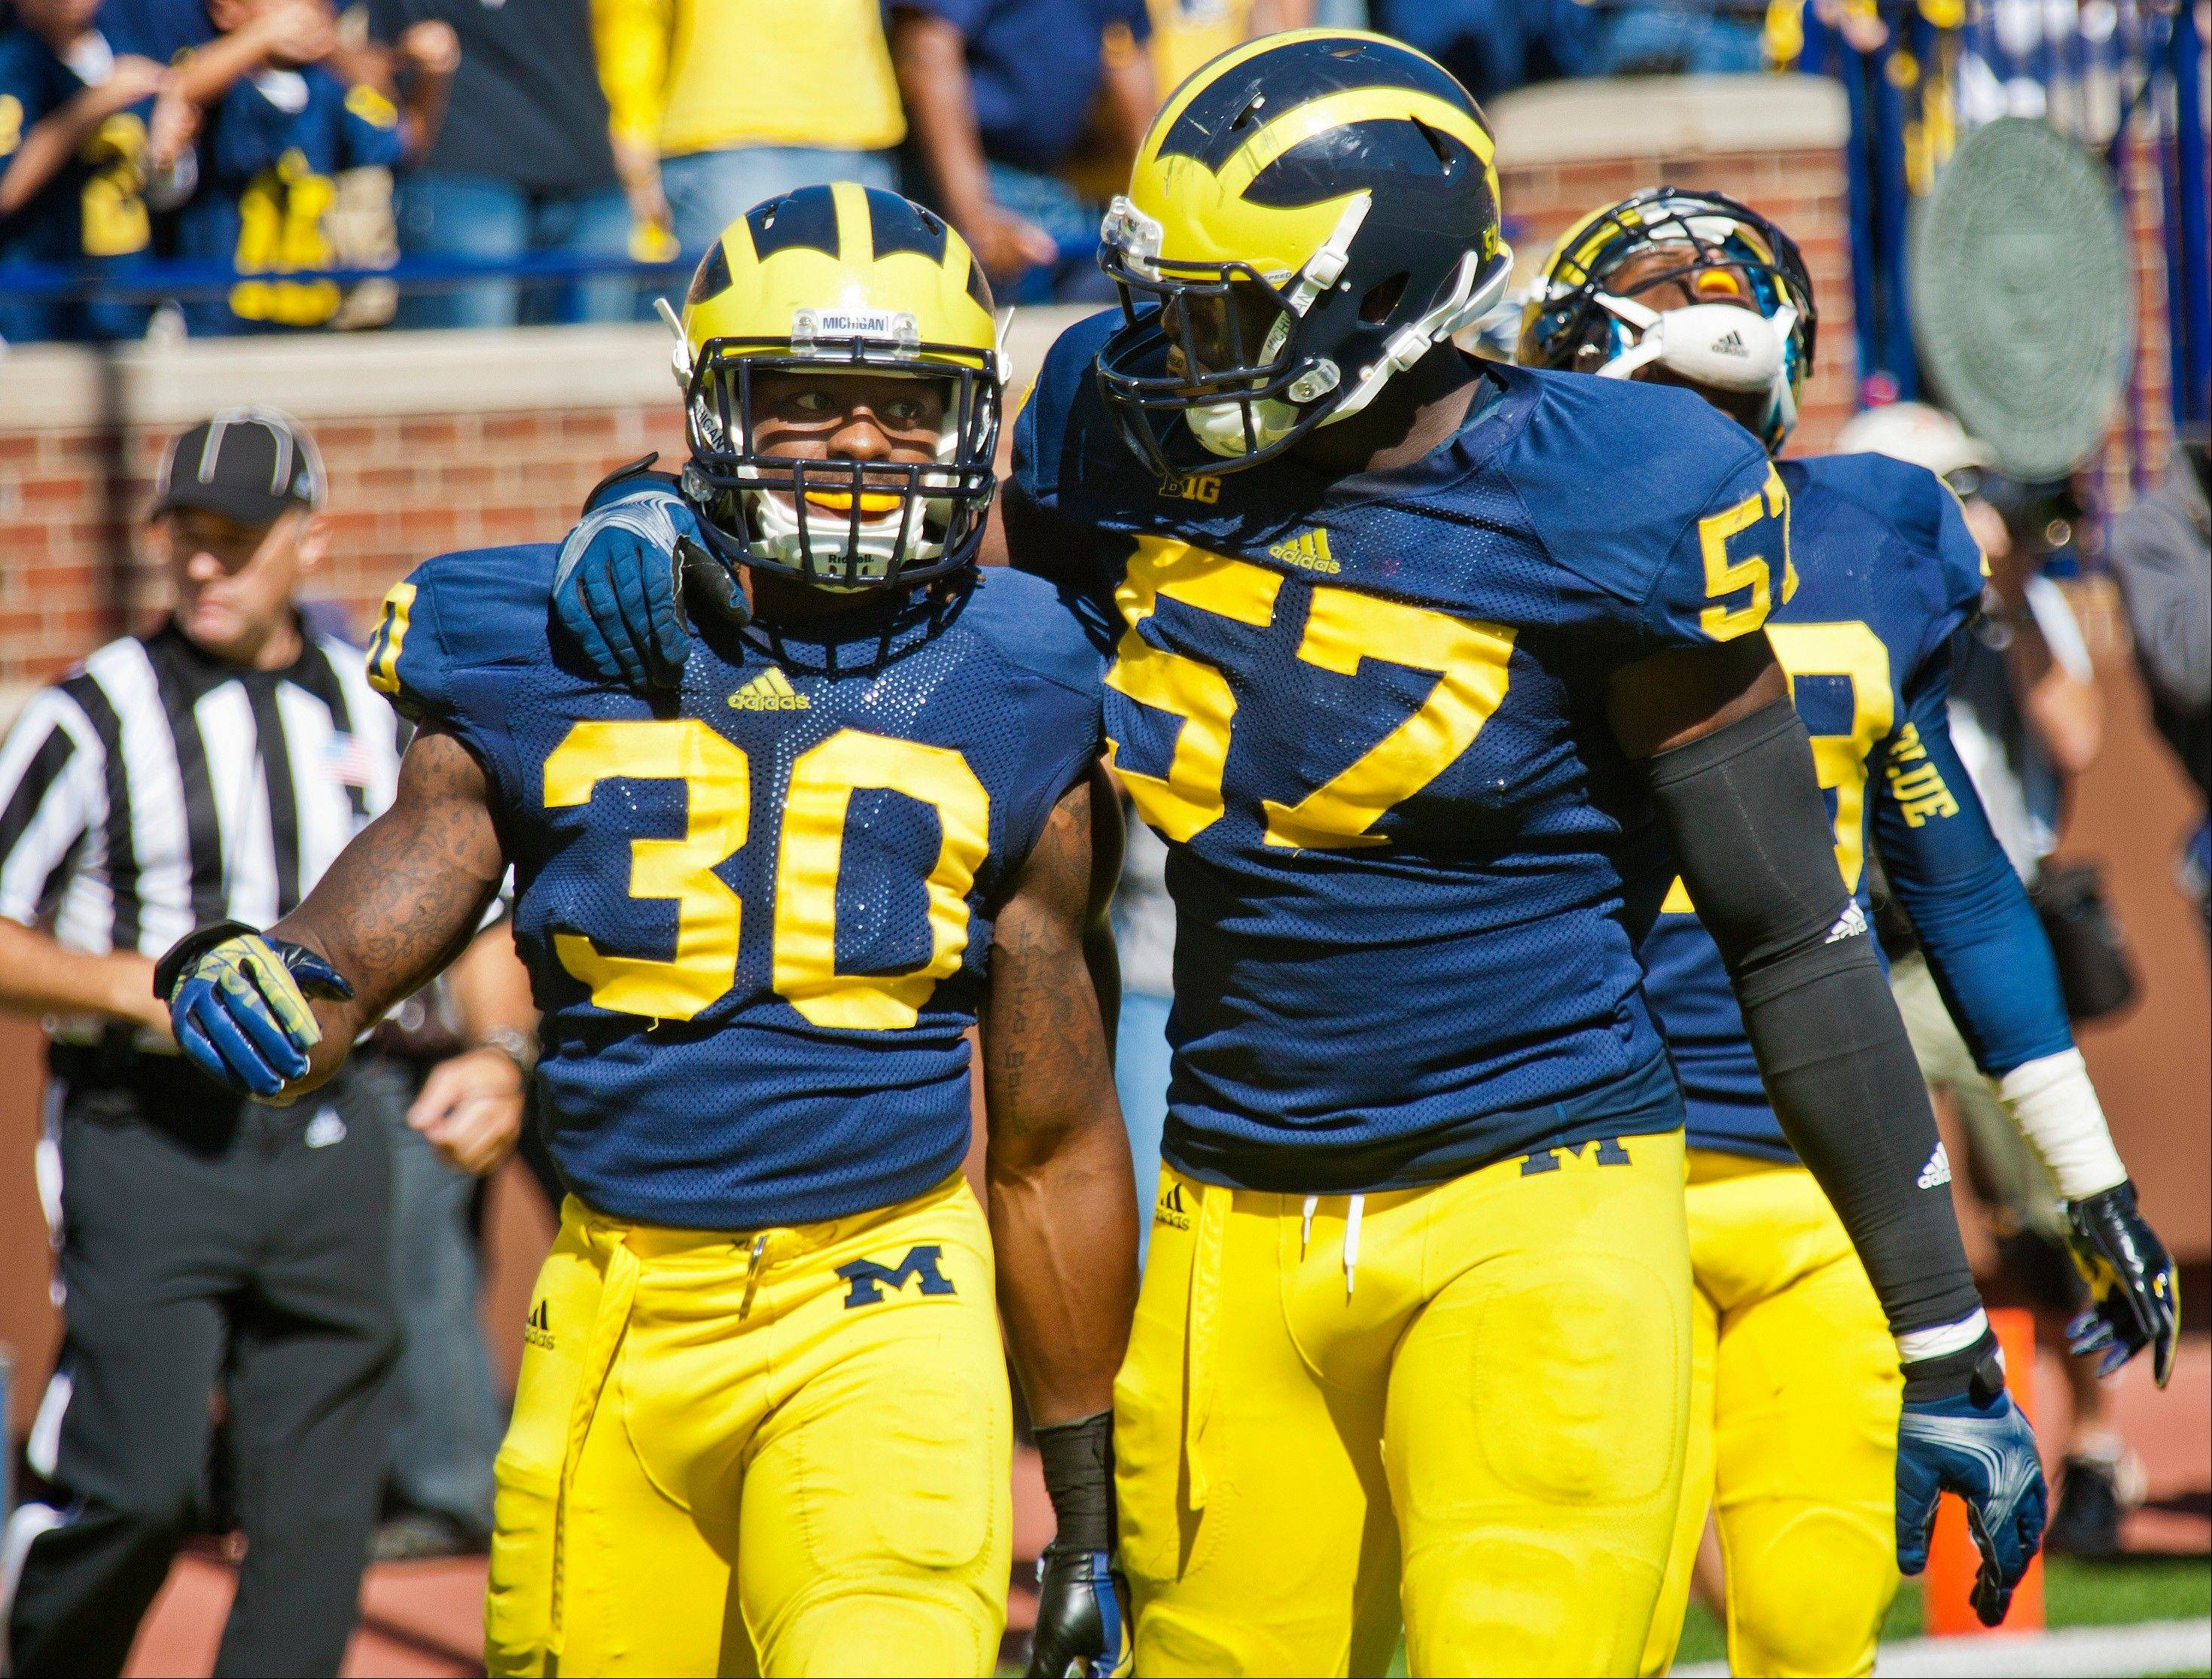 Michigan safety Thomas Gordon (30) and offensive lineman Patrick Kugler (57) celebrate after stopping Akron from scoring in the final seconds of last Saturday�s game in Ann Arbor, Mich.